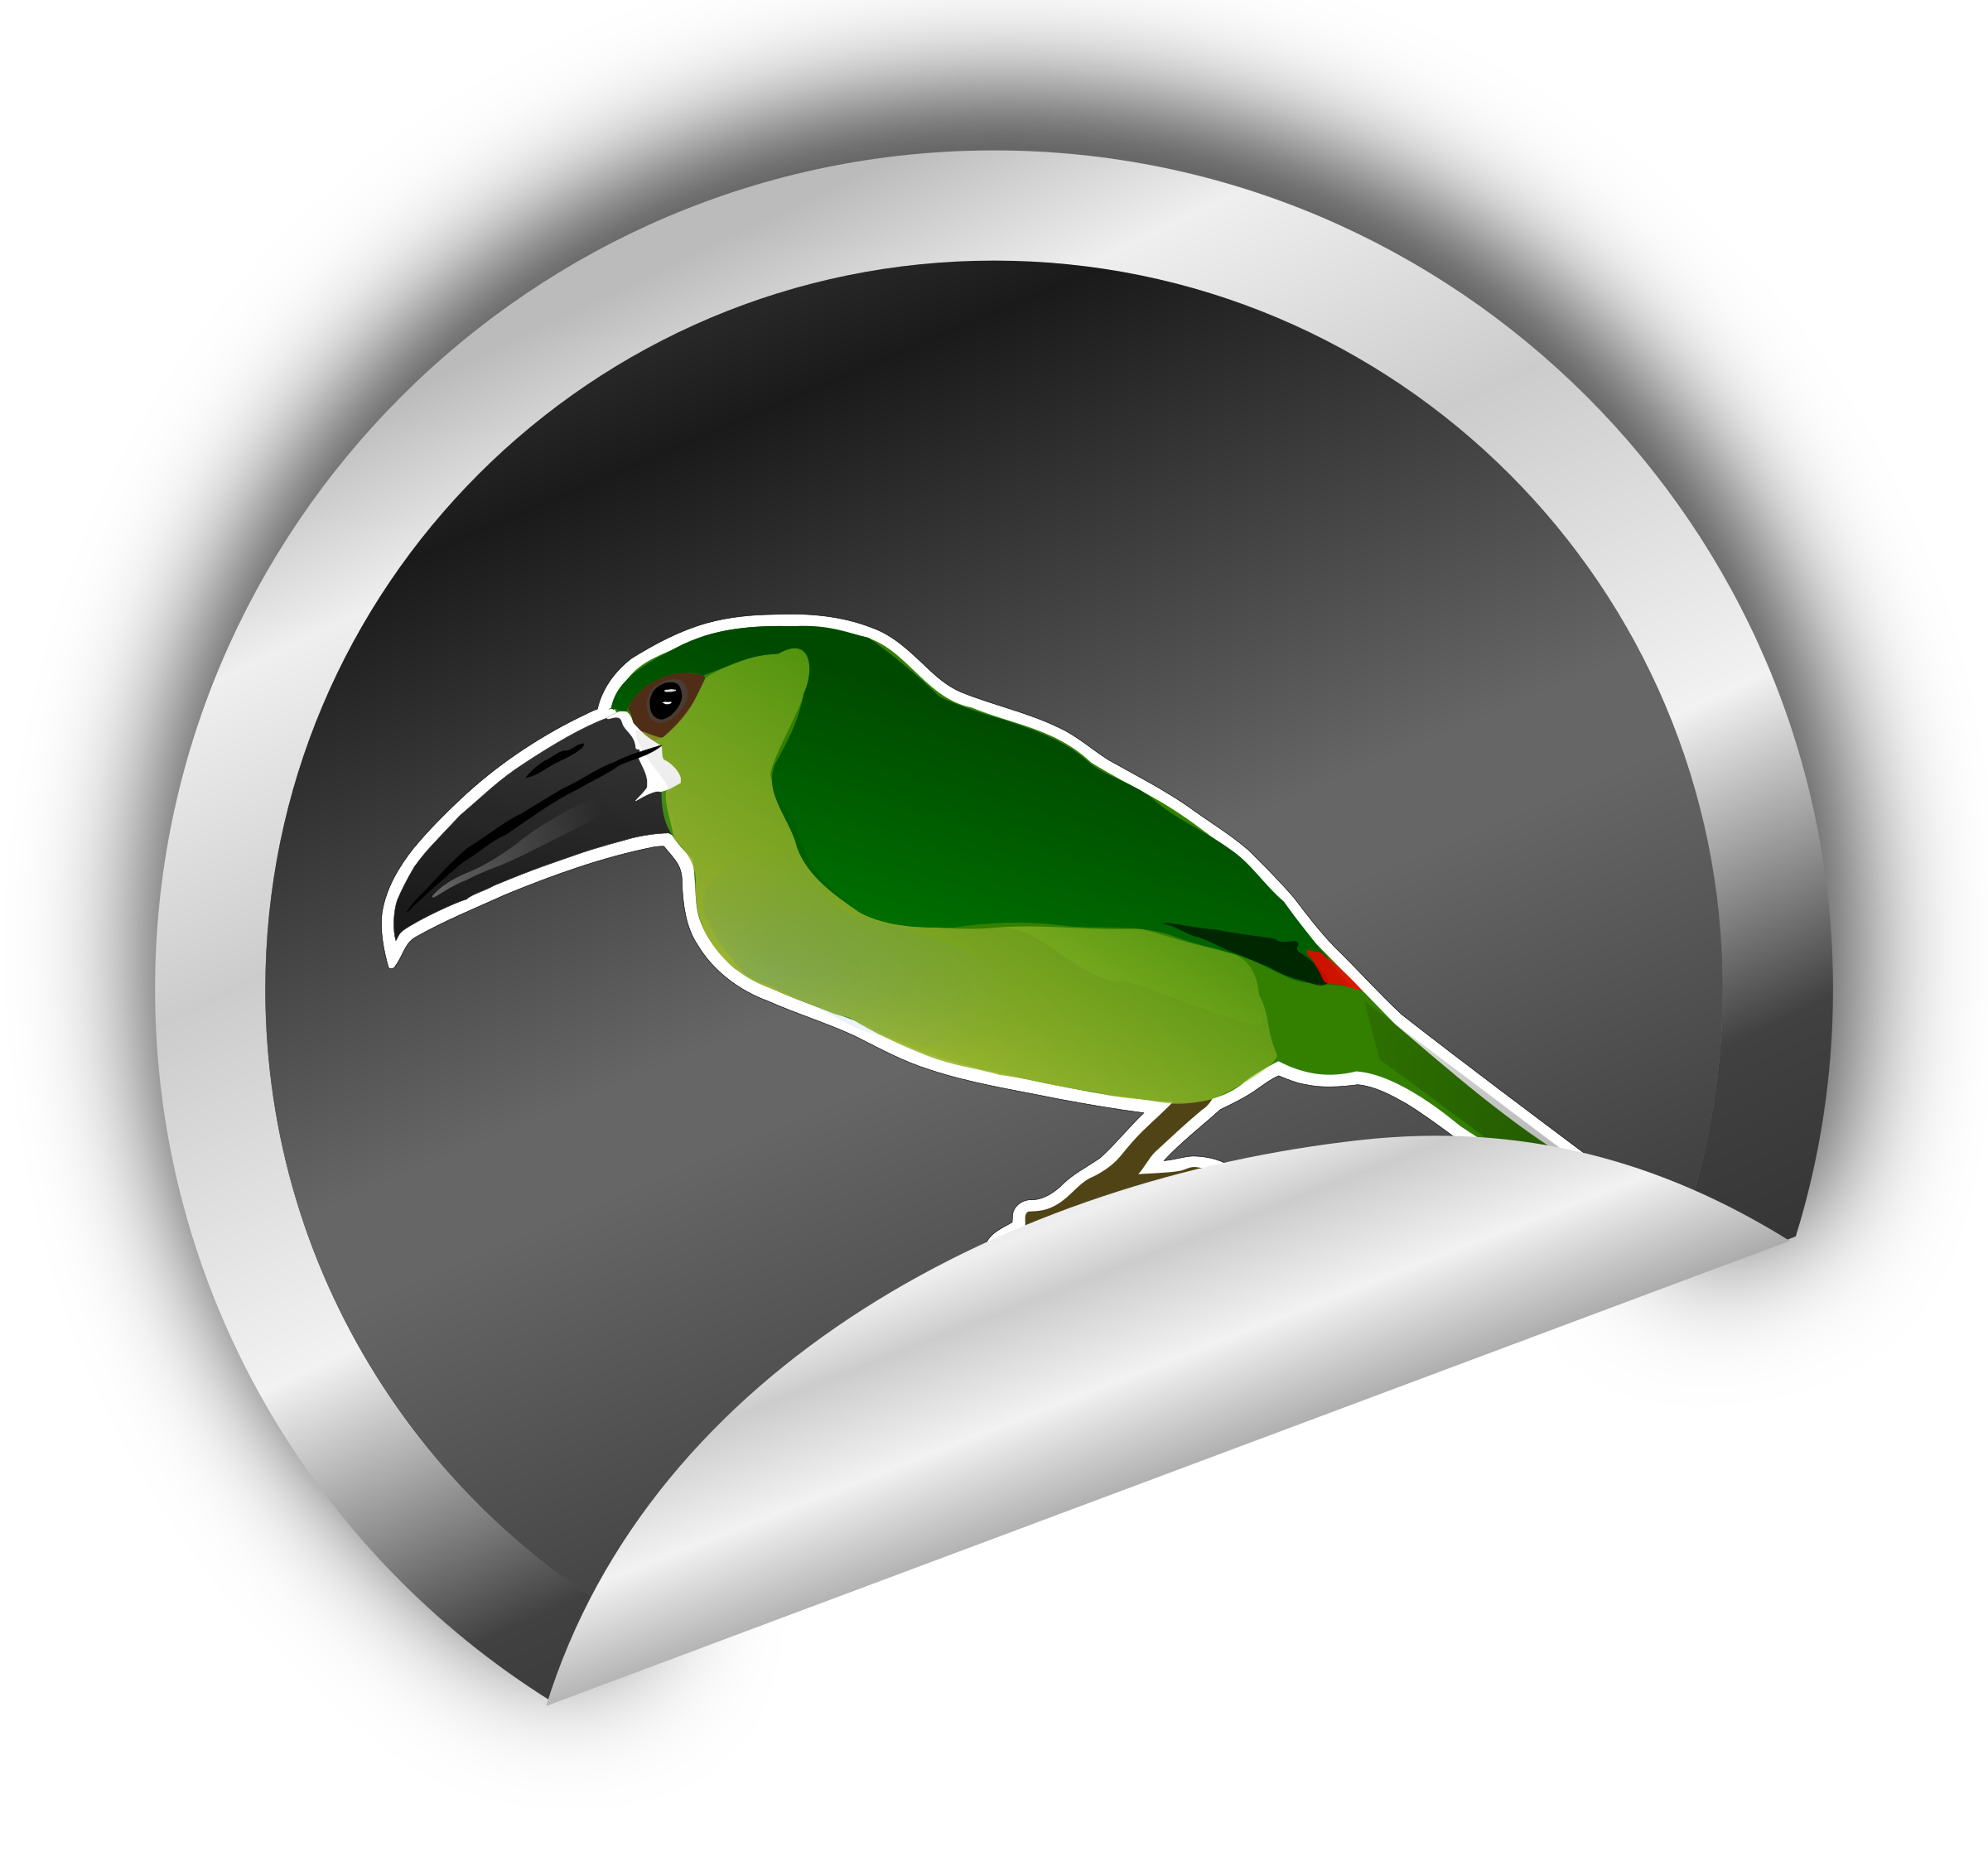 Toucanet clipart #3, Download drawings